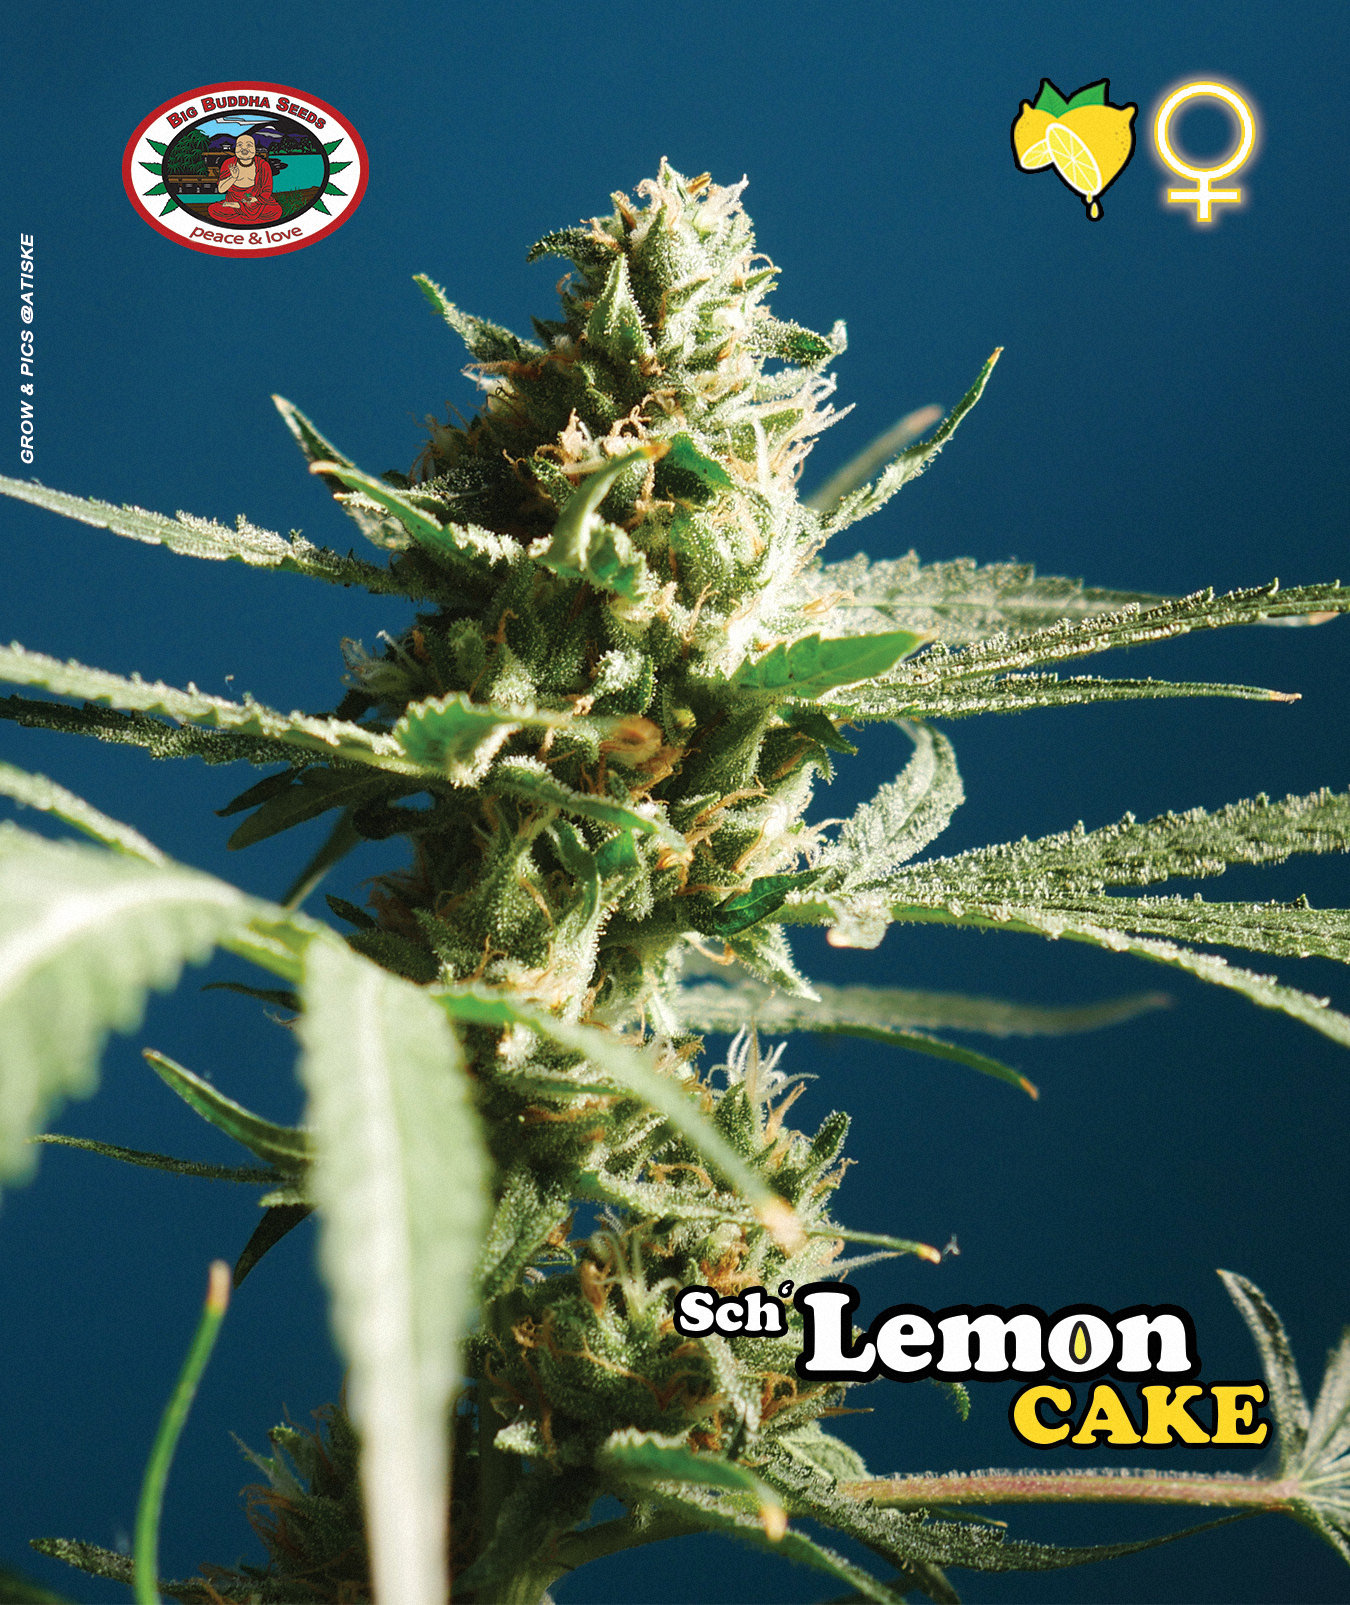 Sch'Lemon Cake Bud Shot